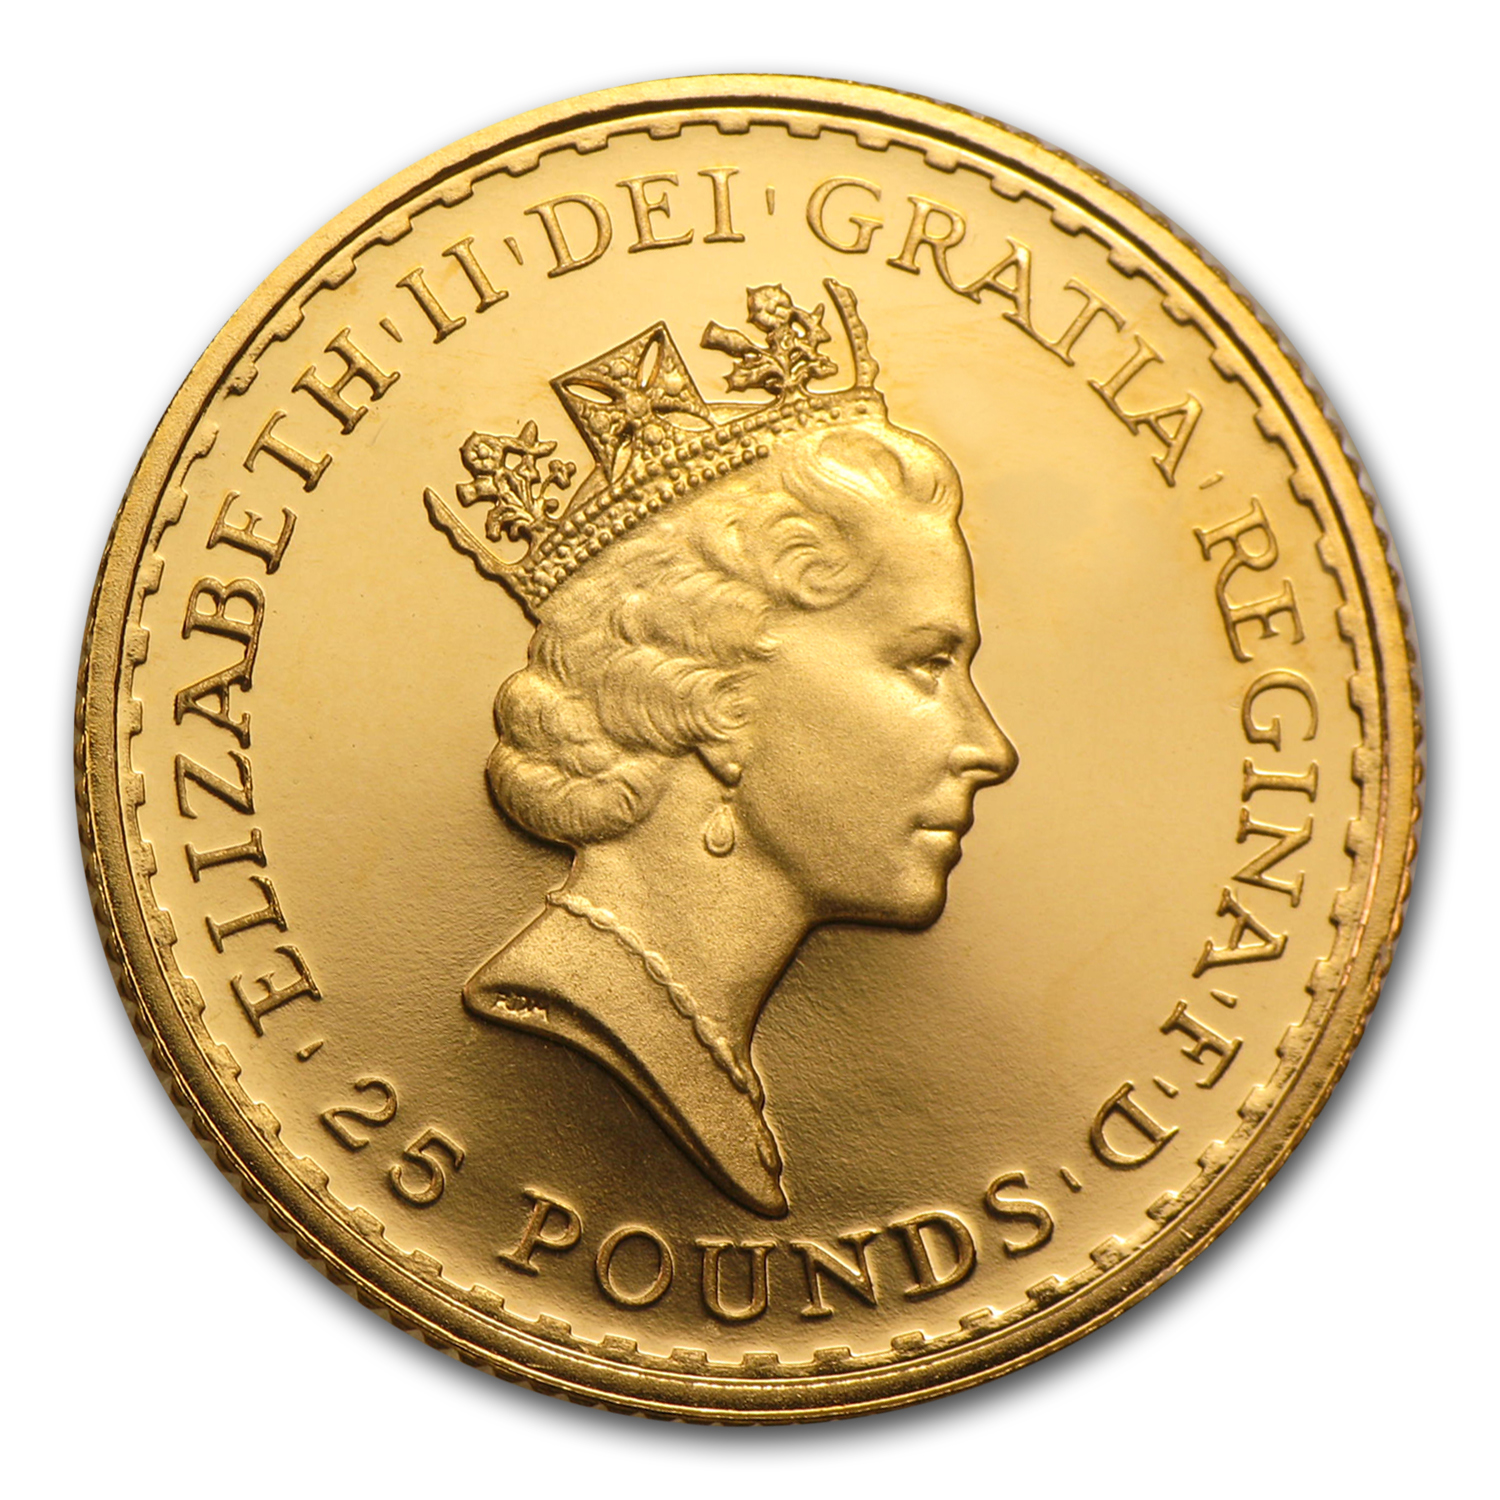 1988 Great Britain 1/4 oz Proof Gold Britannia